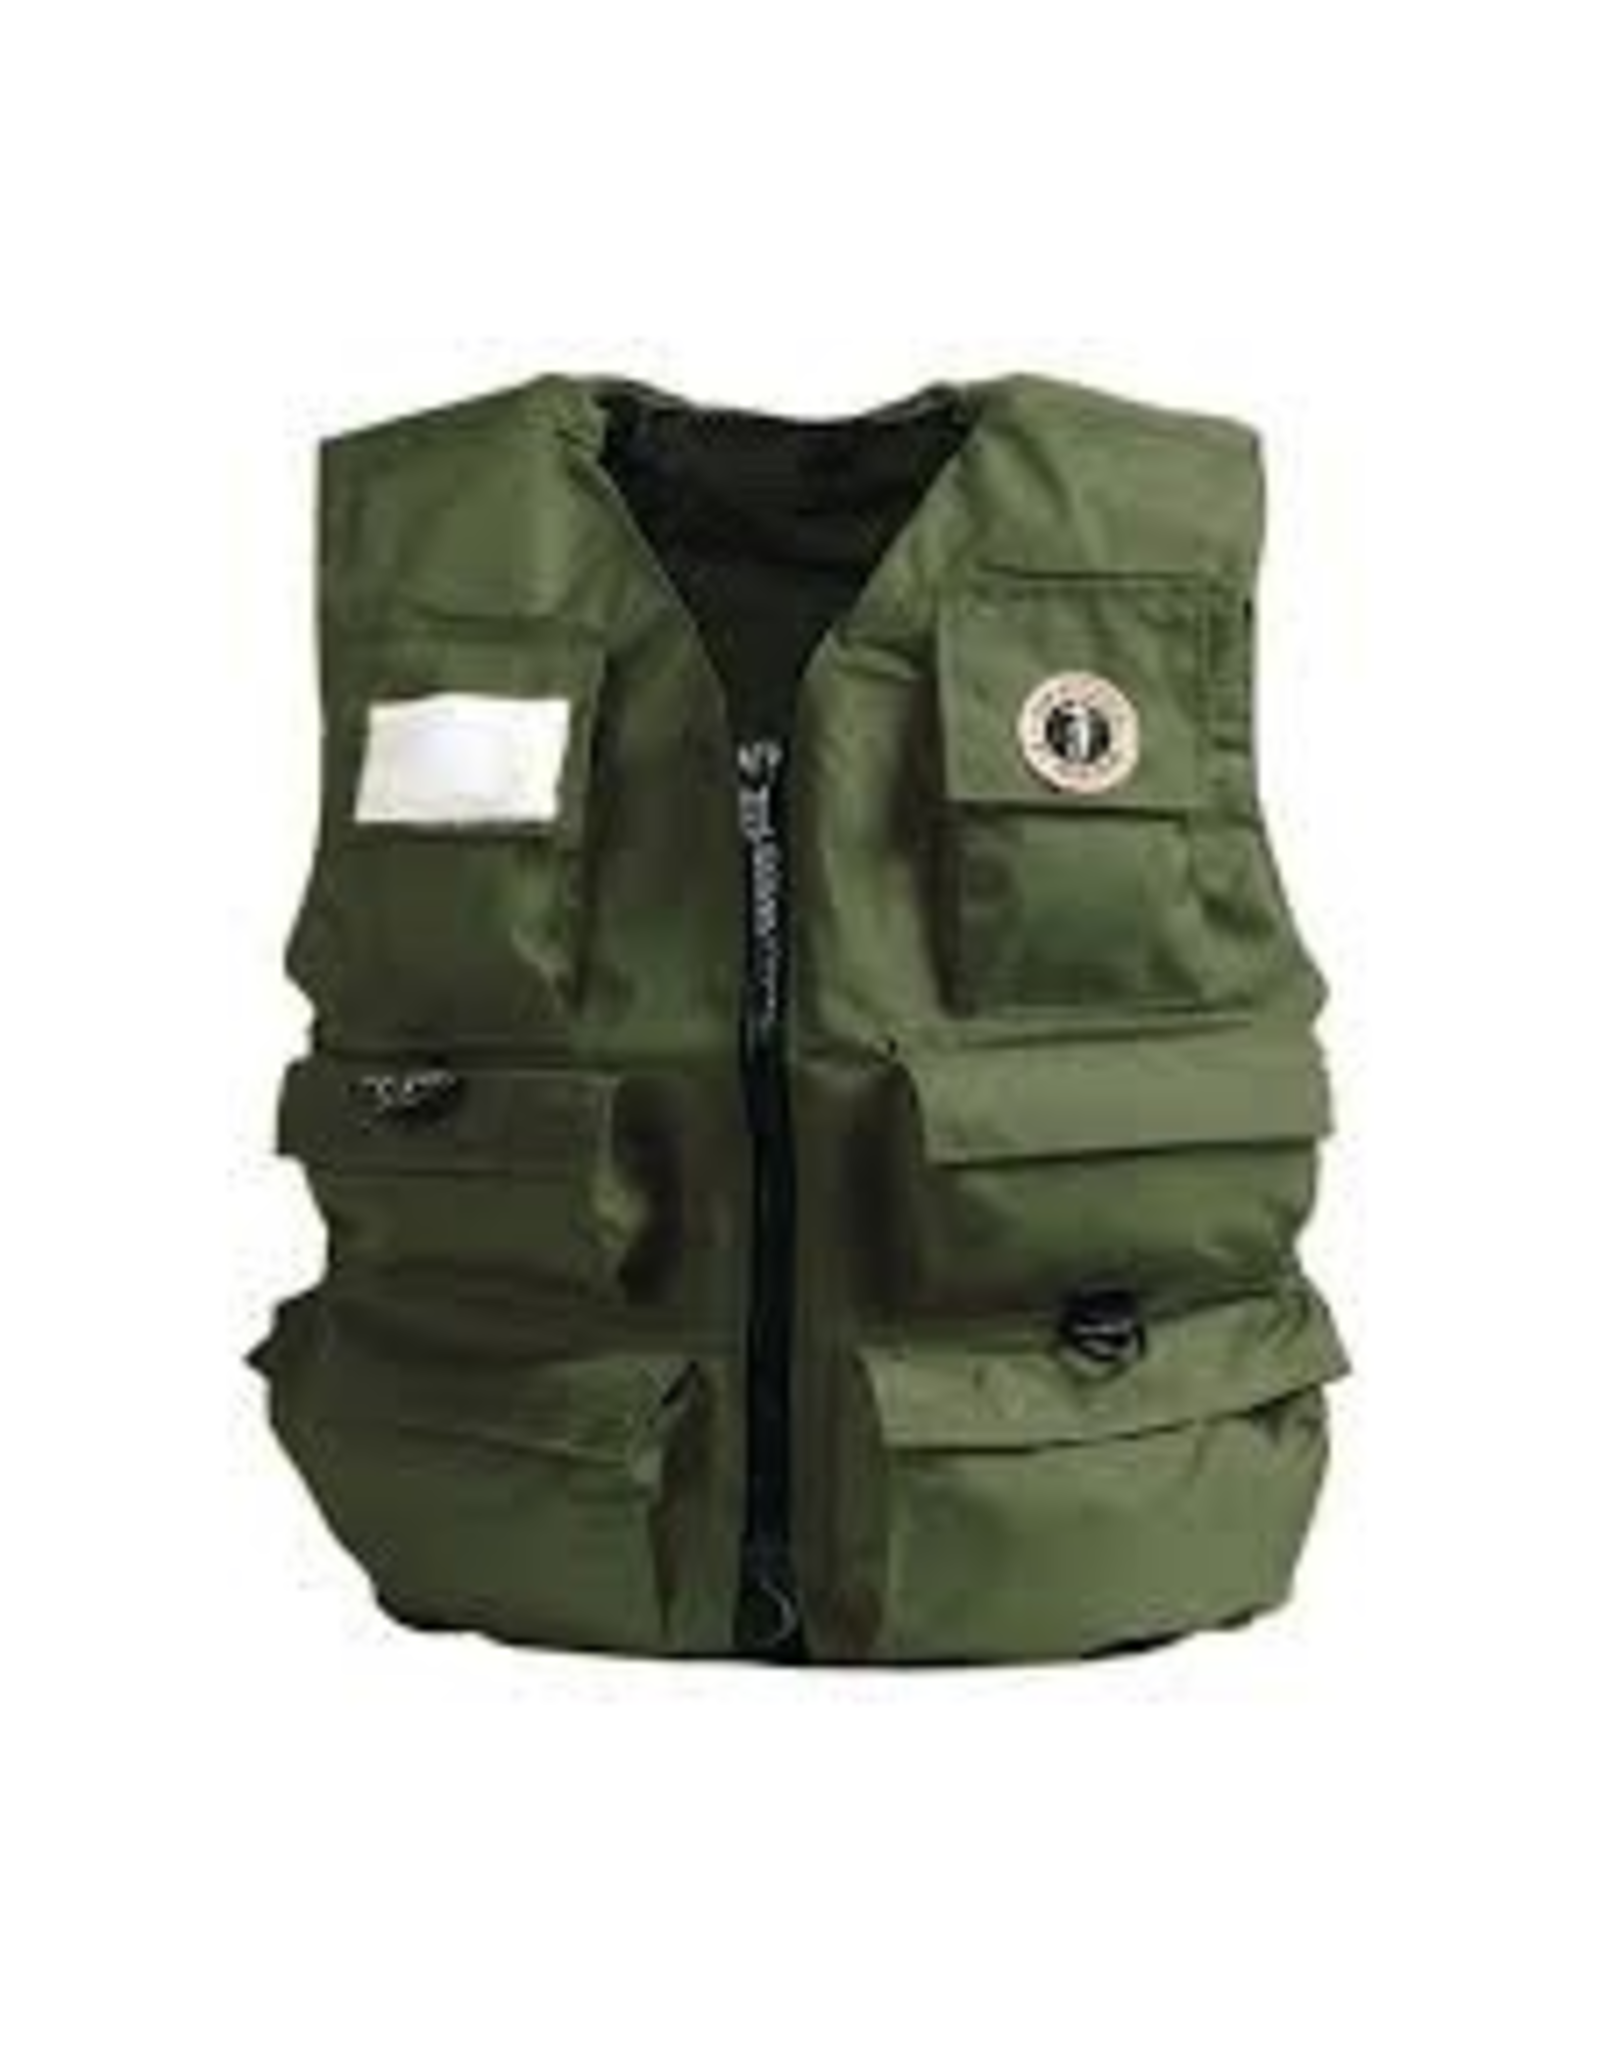 Mustang Survival Mustang Survival Fisherman's Vest Manual Inflatable PFD